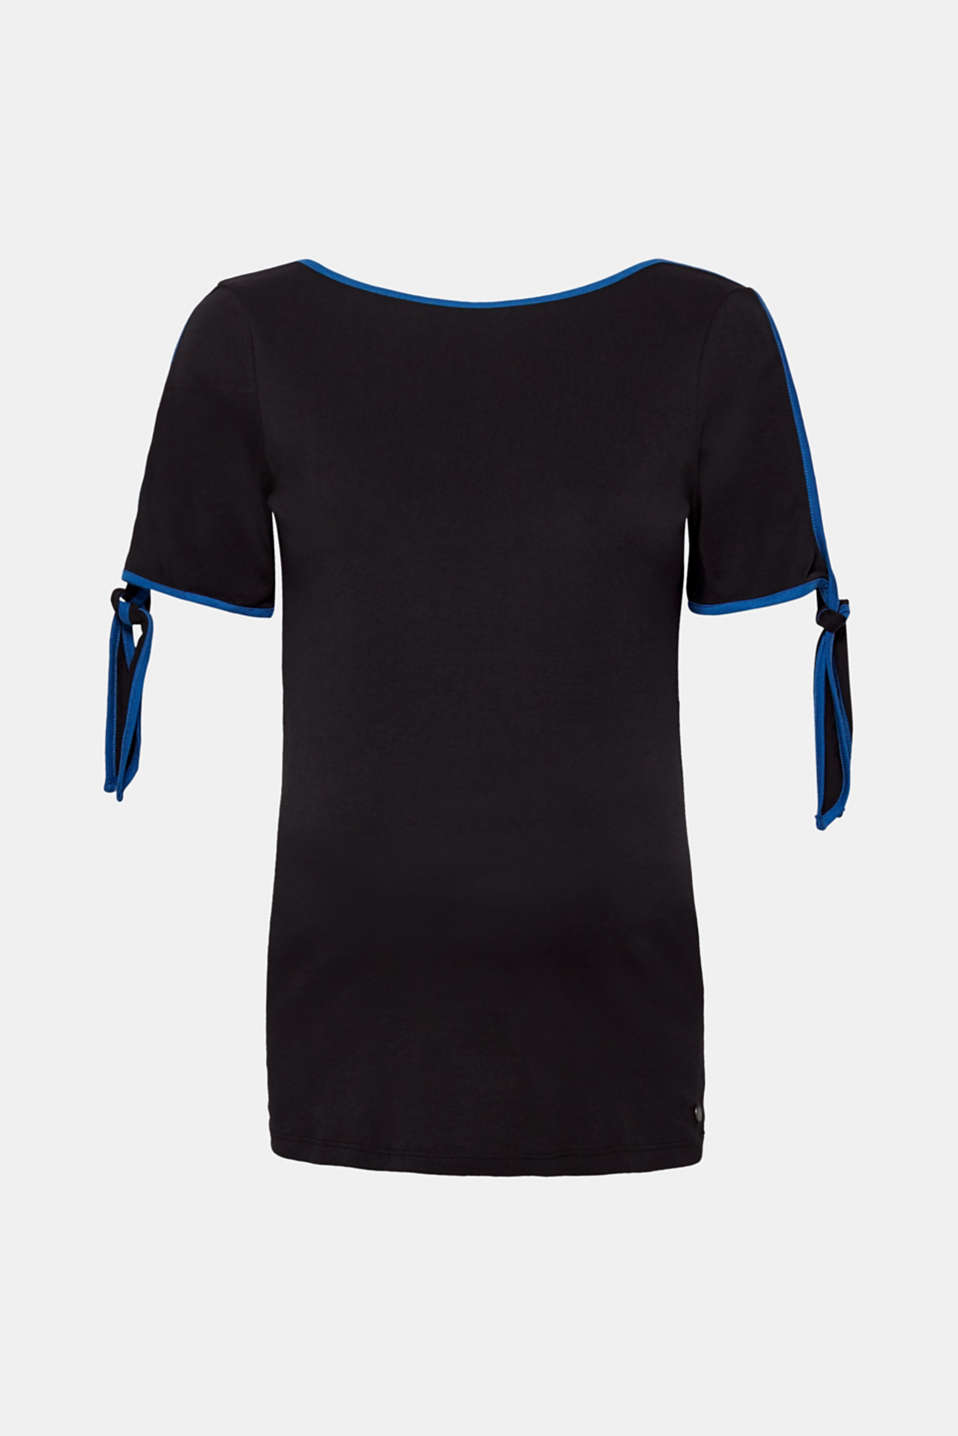 T-shirt with piping and bows on the sleeves, LCBLACK, detail image number 6